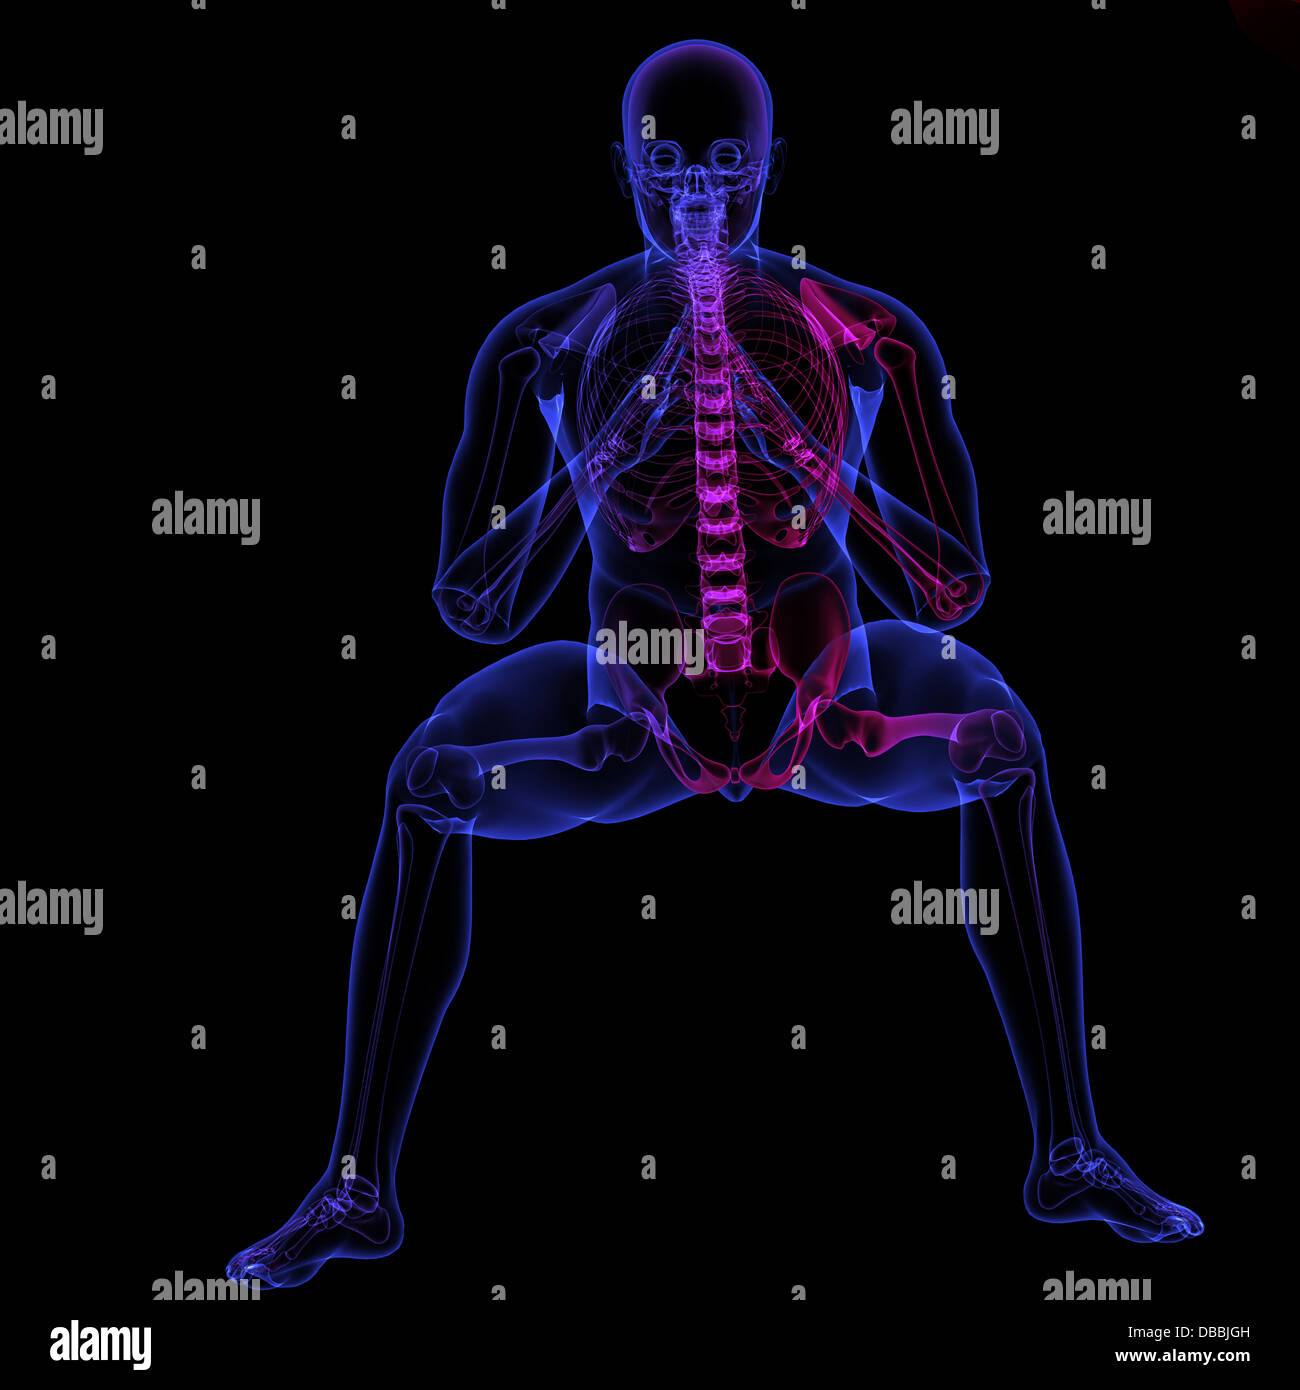 Human Body X Ray Made In 3d Software Stock Photo 58648369 Alamy